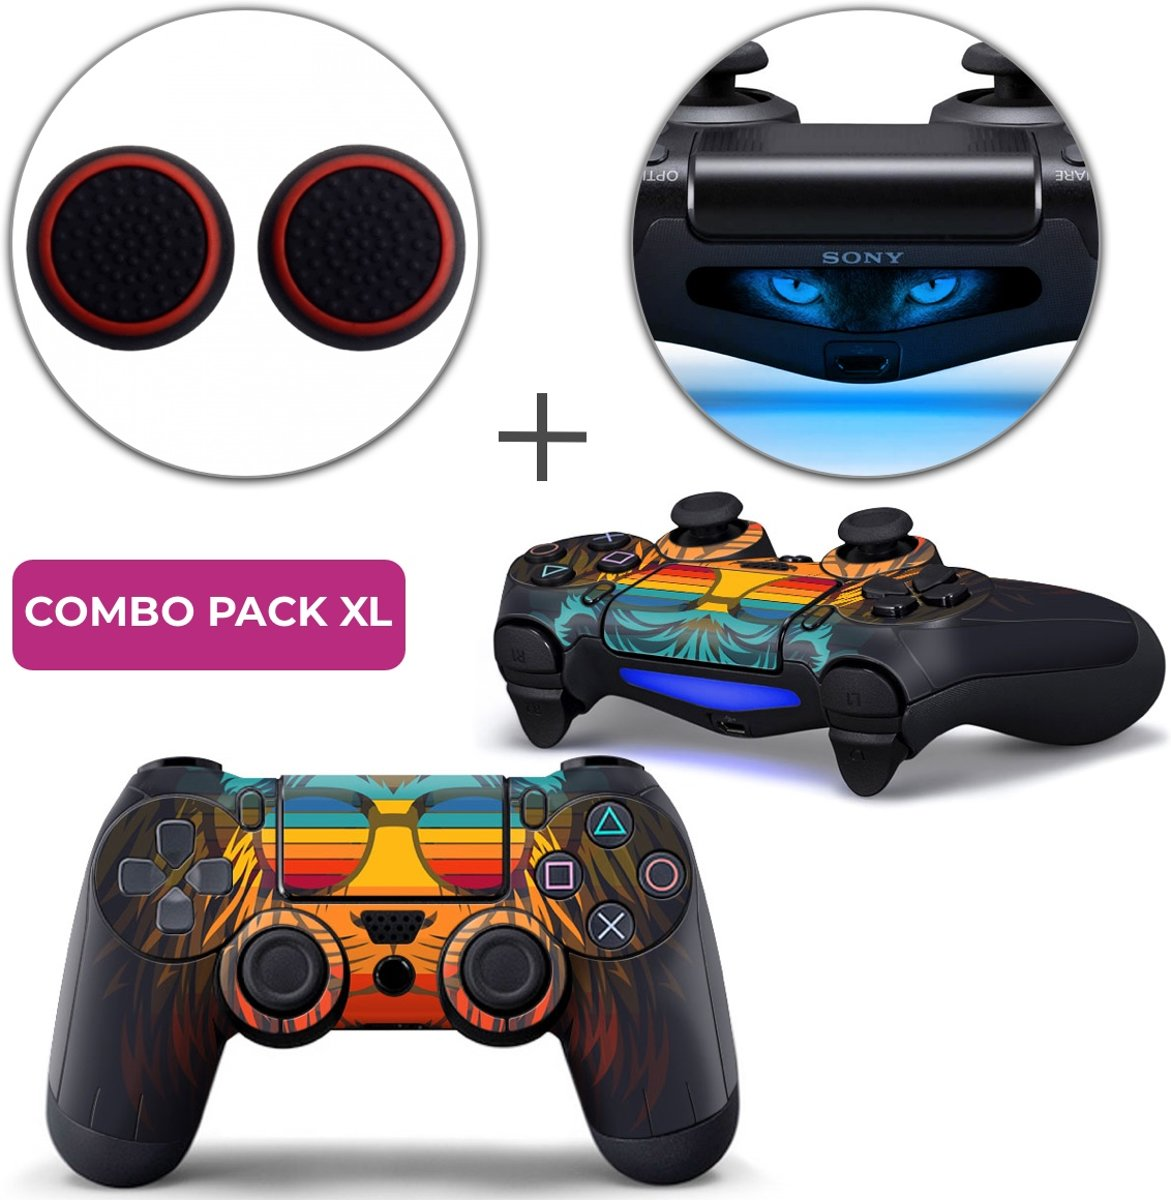 Retro Leeuw Combo Pack XL - PS4 Controller Skins PlayStation Stickers + Thumb Grips + Lightbar Skin Sticker